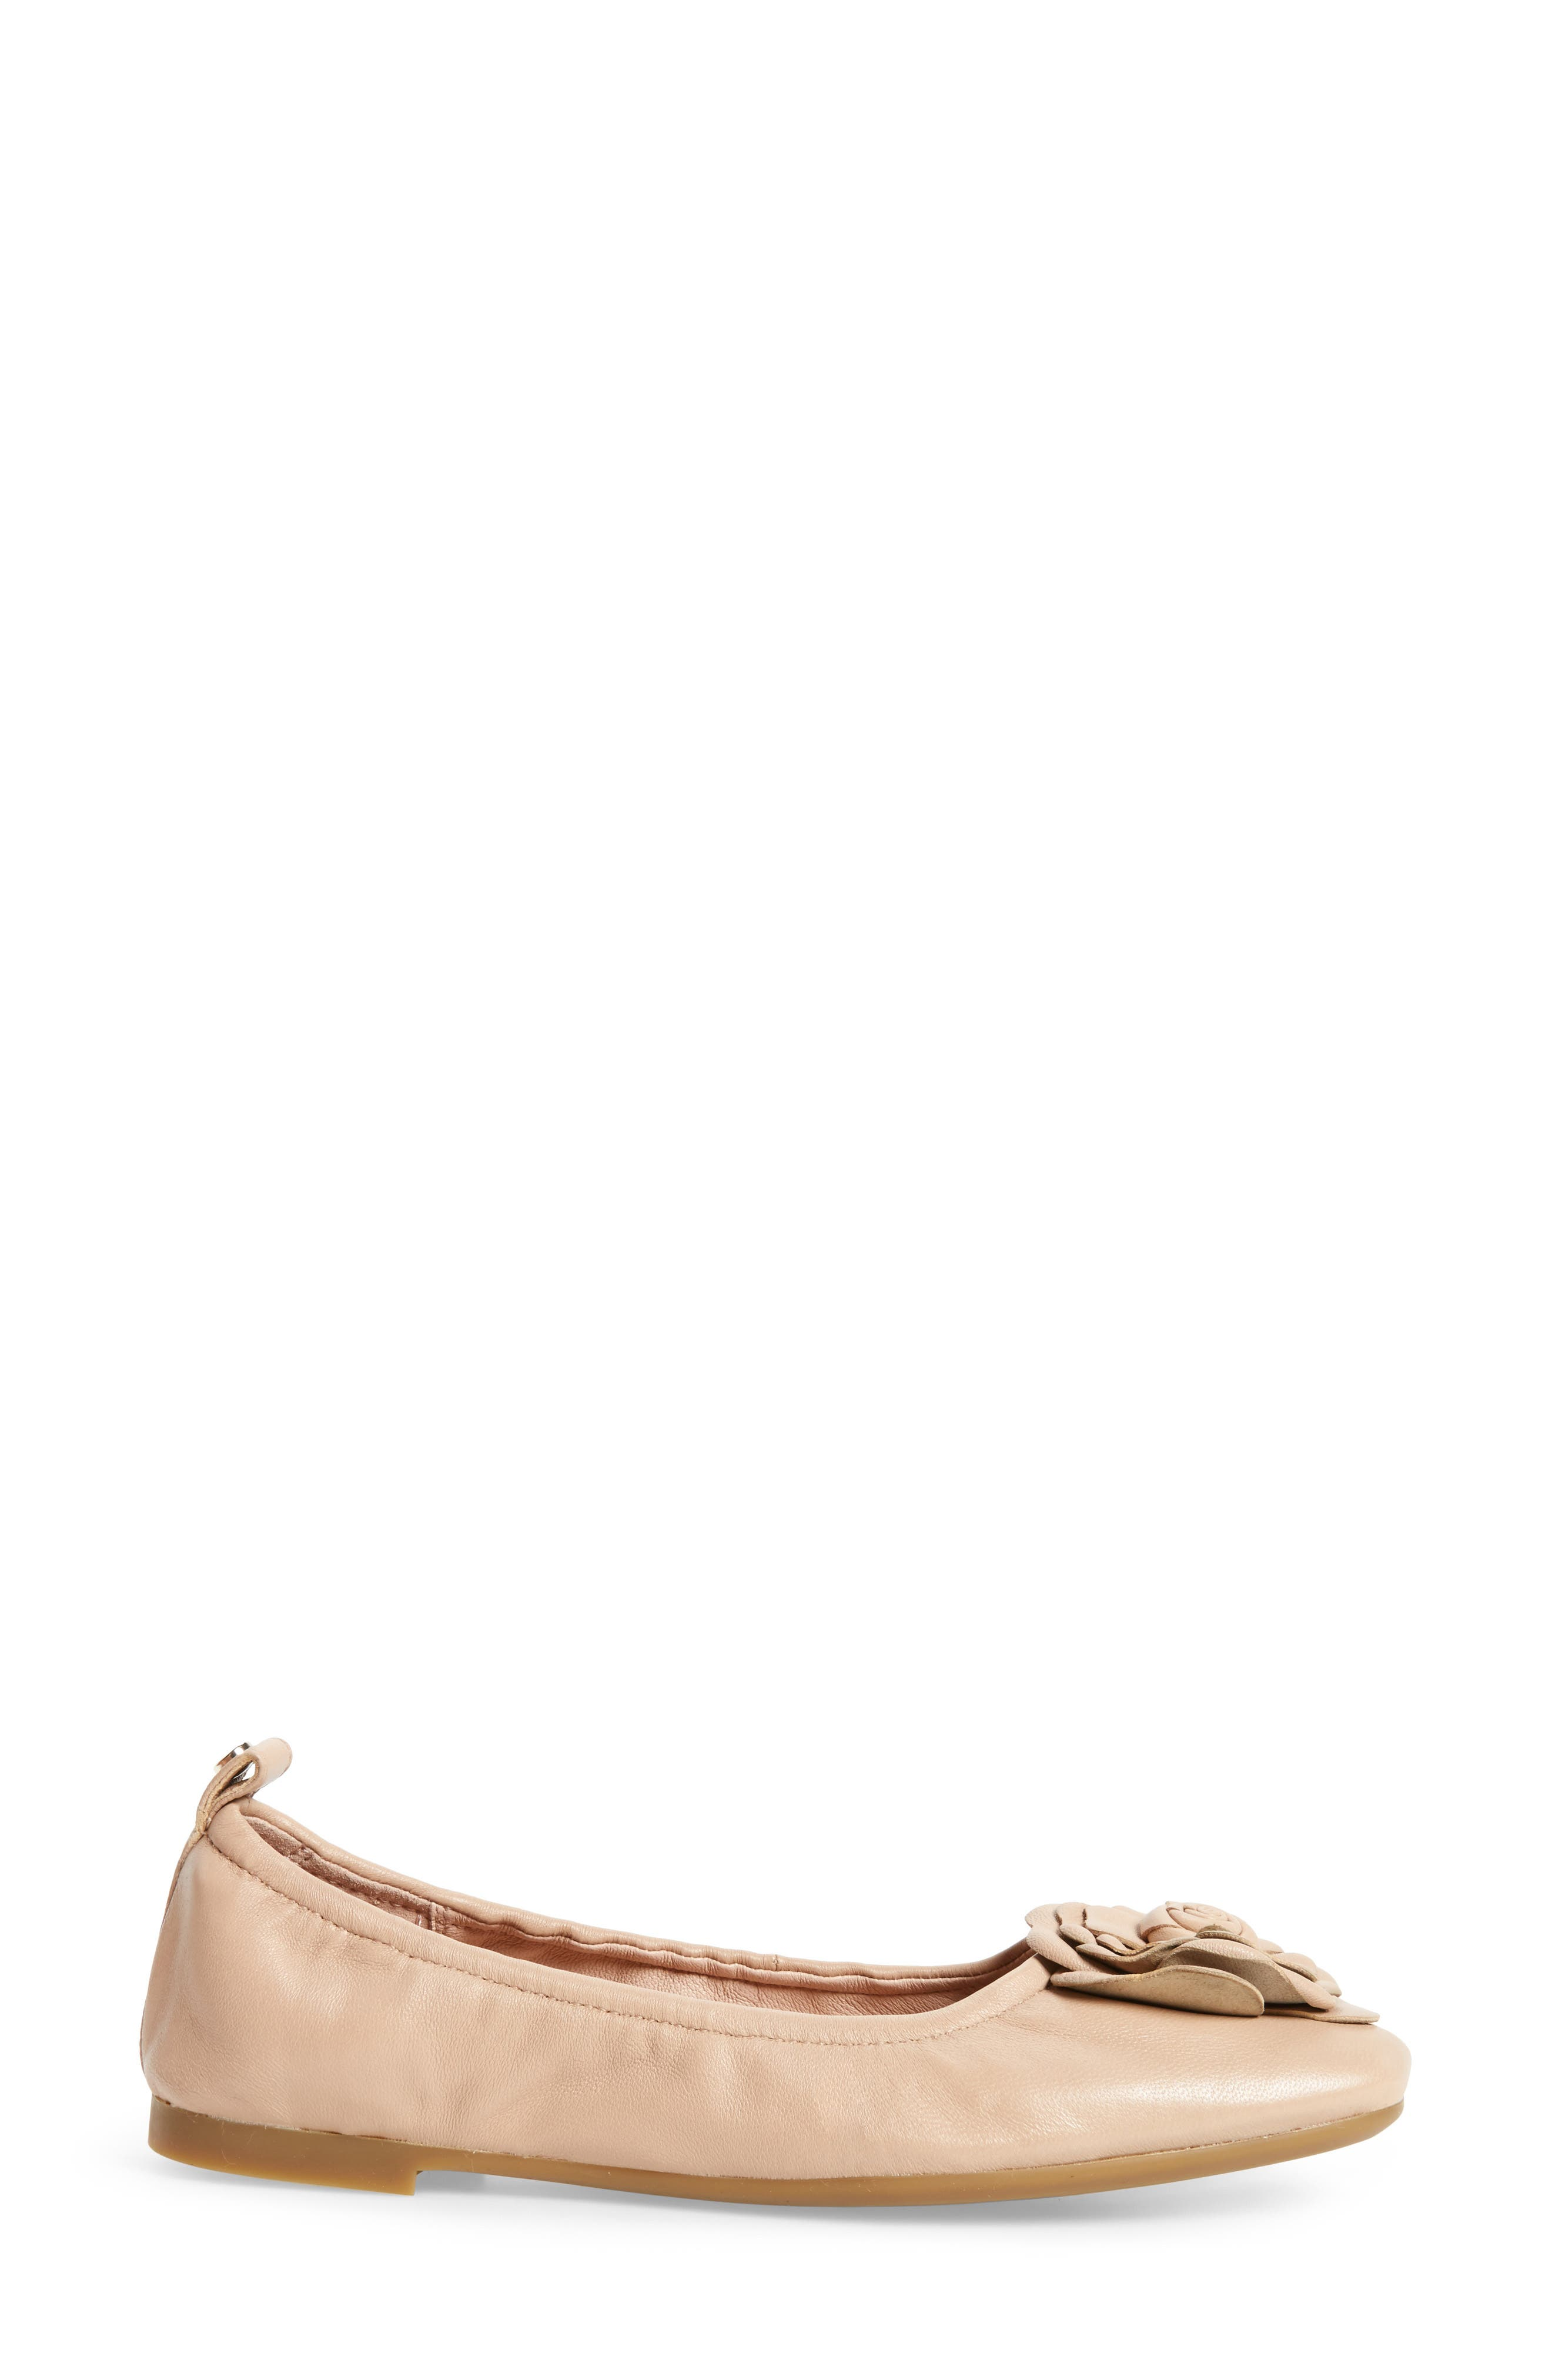 Rosalyn Ballet Flat,                             Alternate thumbnail 3, color,                             Nude Leather